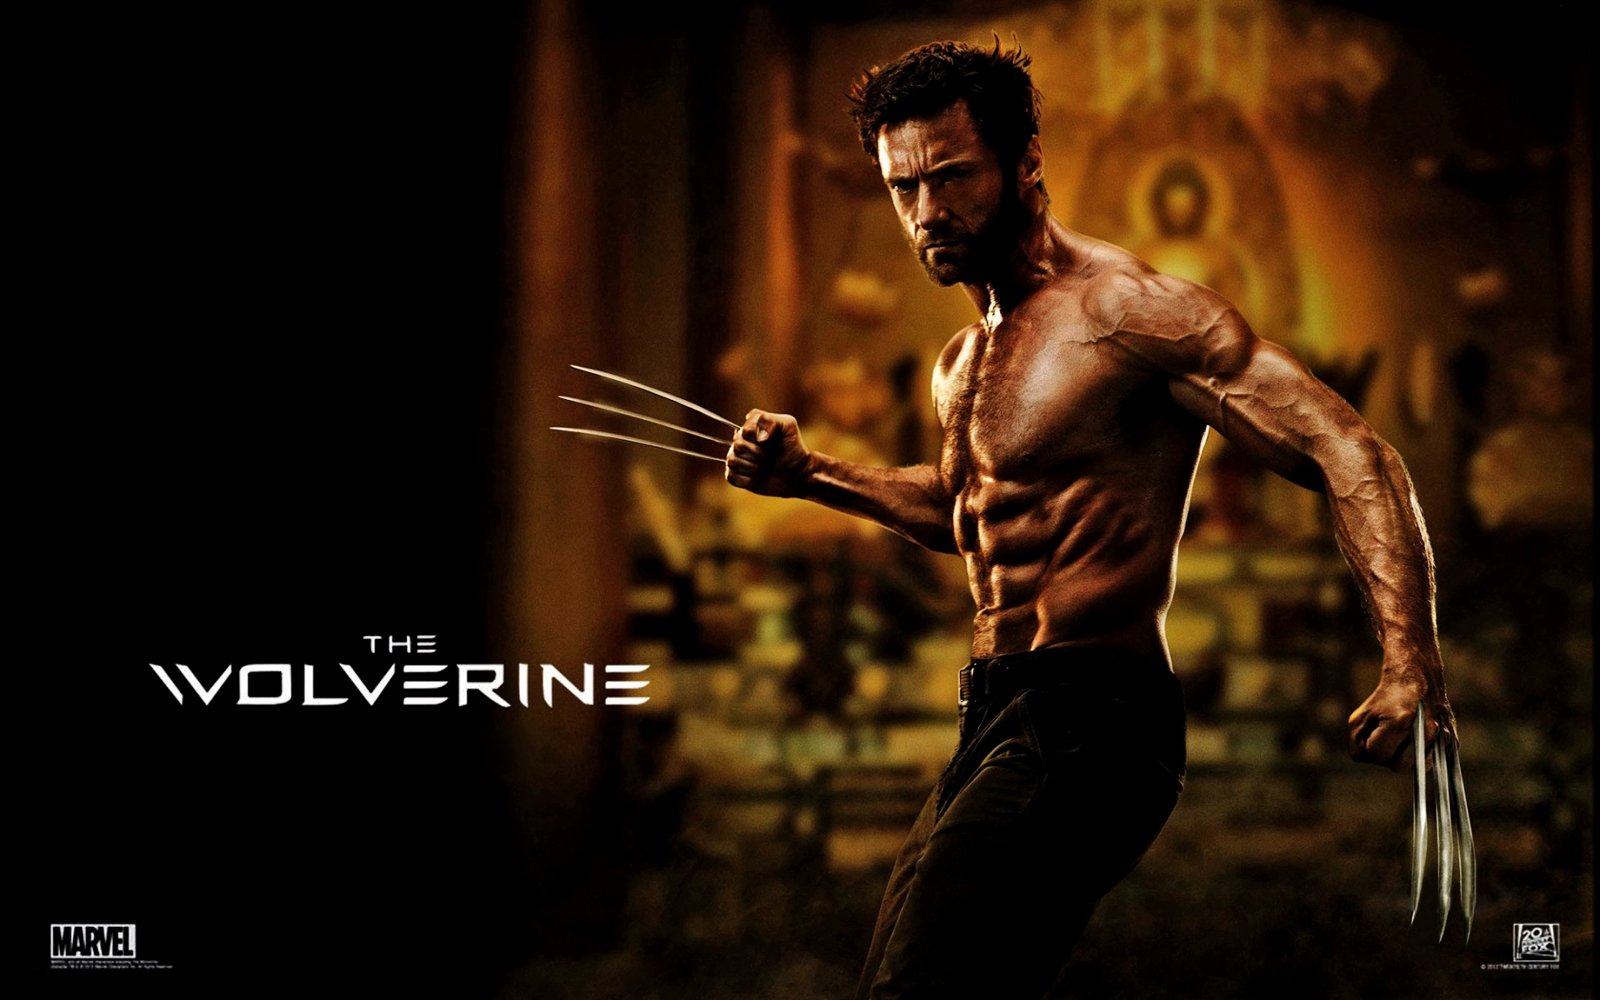 New Movies 2013 http://www.vvallpaper.net/2012/11/the-wolverine-2013-hd-wallpapers.html